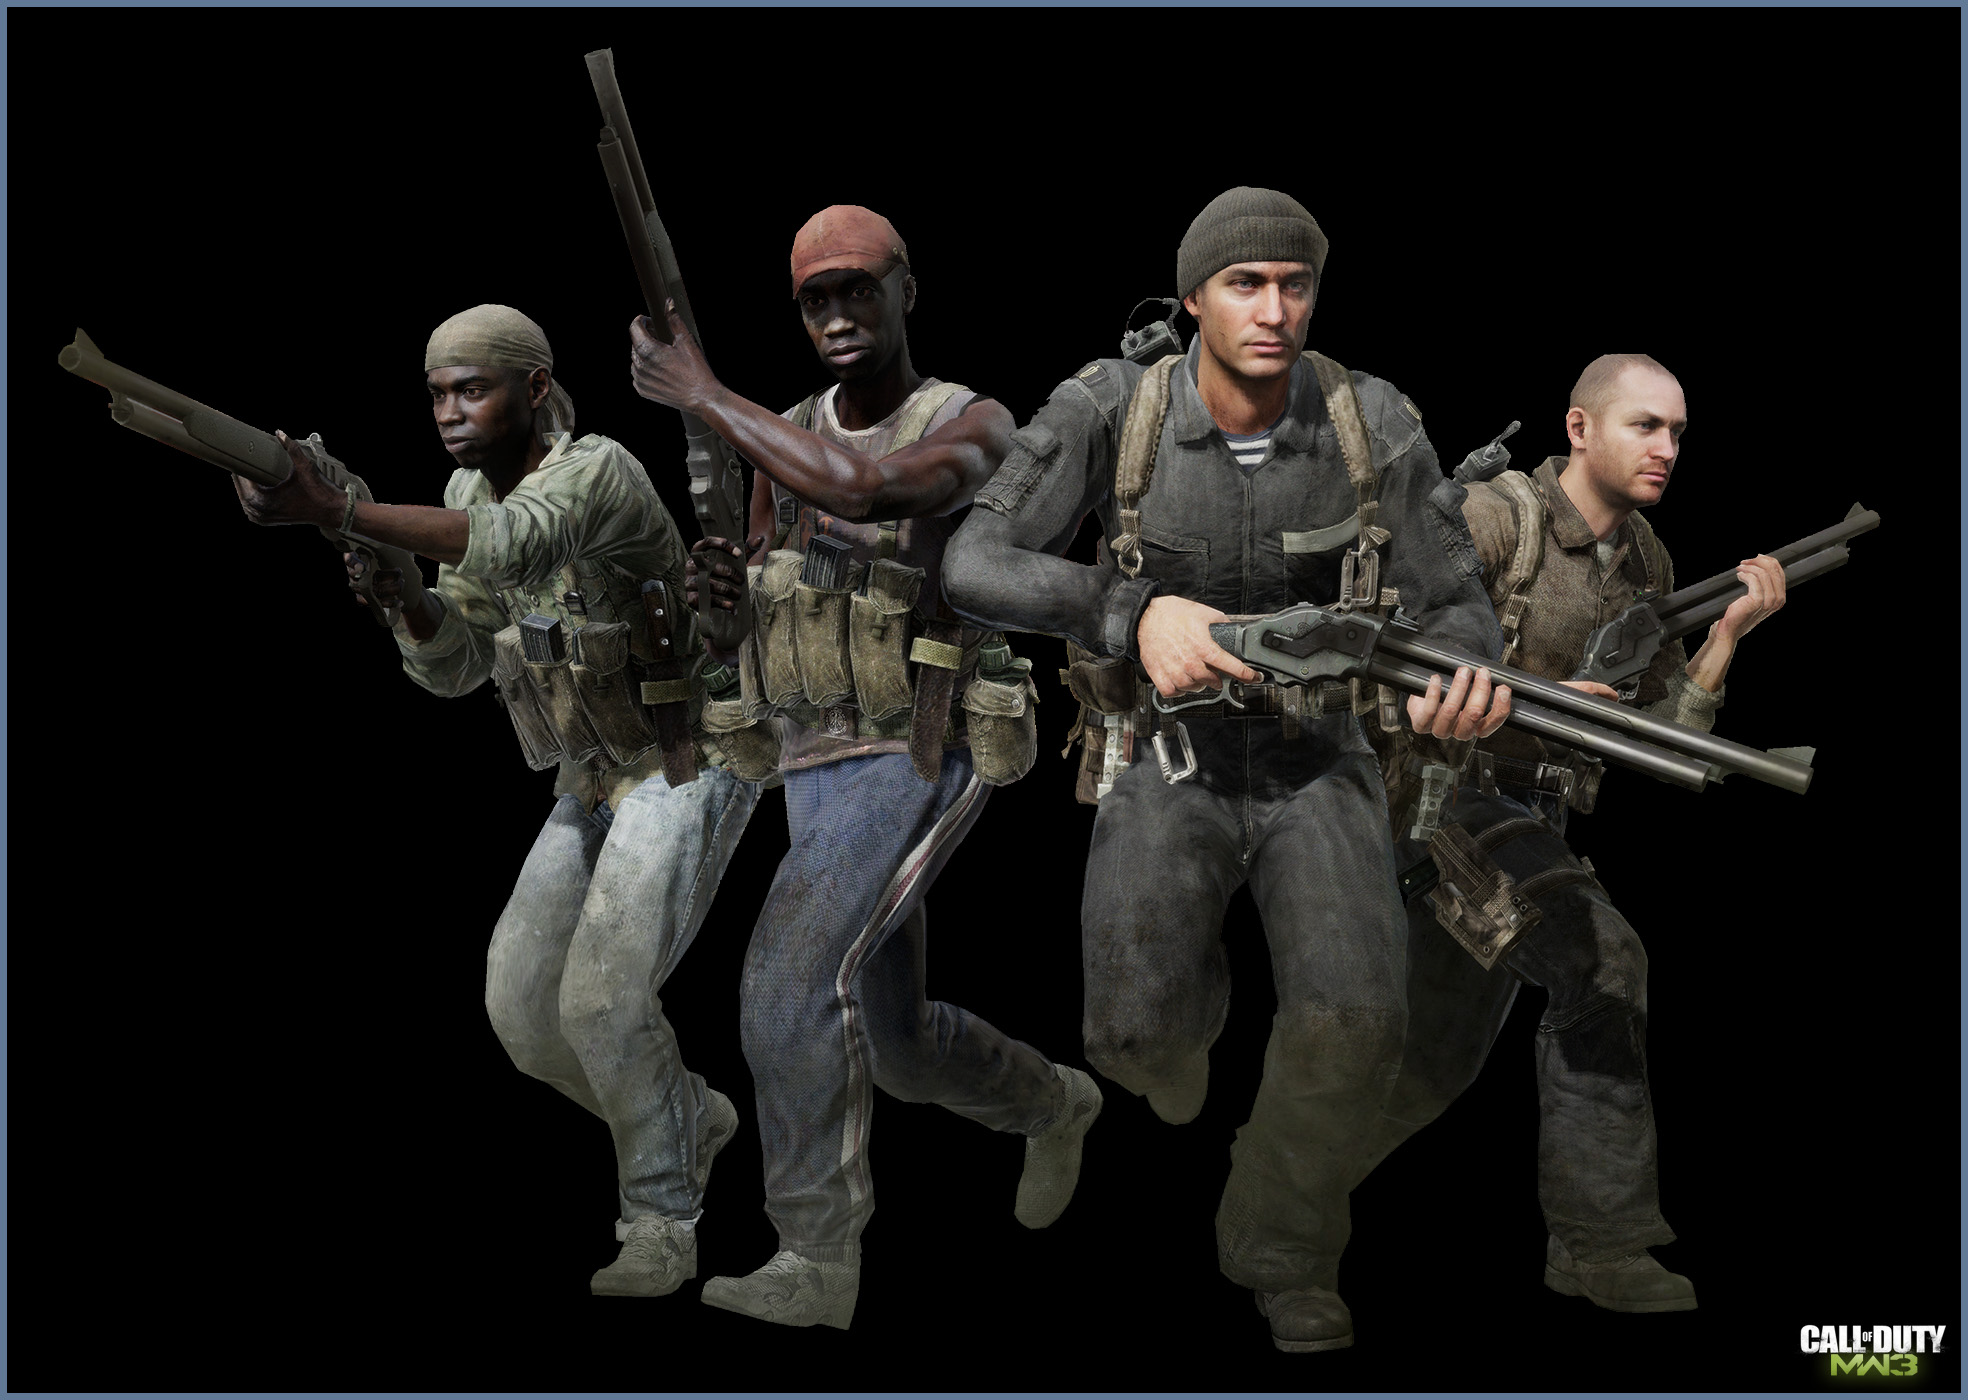 Mw3 3d Wallpapers Call Of Duty Modern Warfare 3 Posed Characters Art